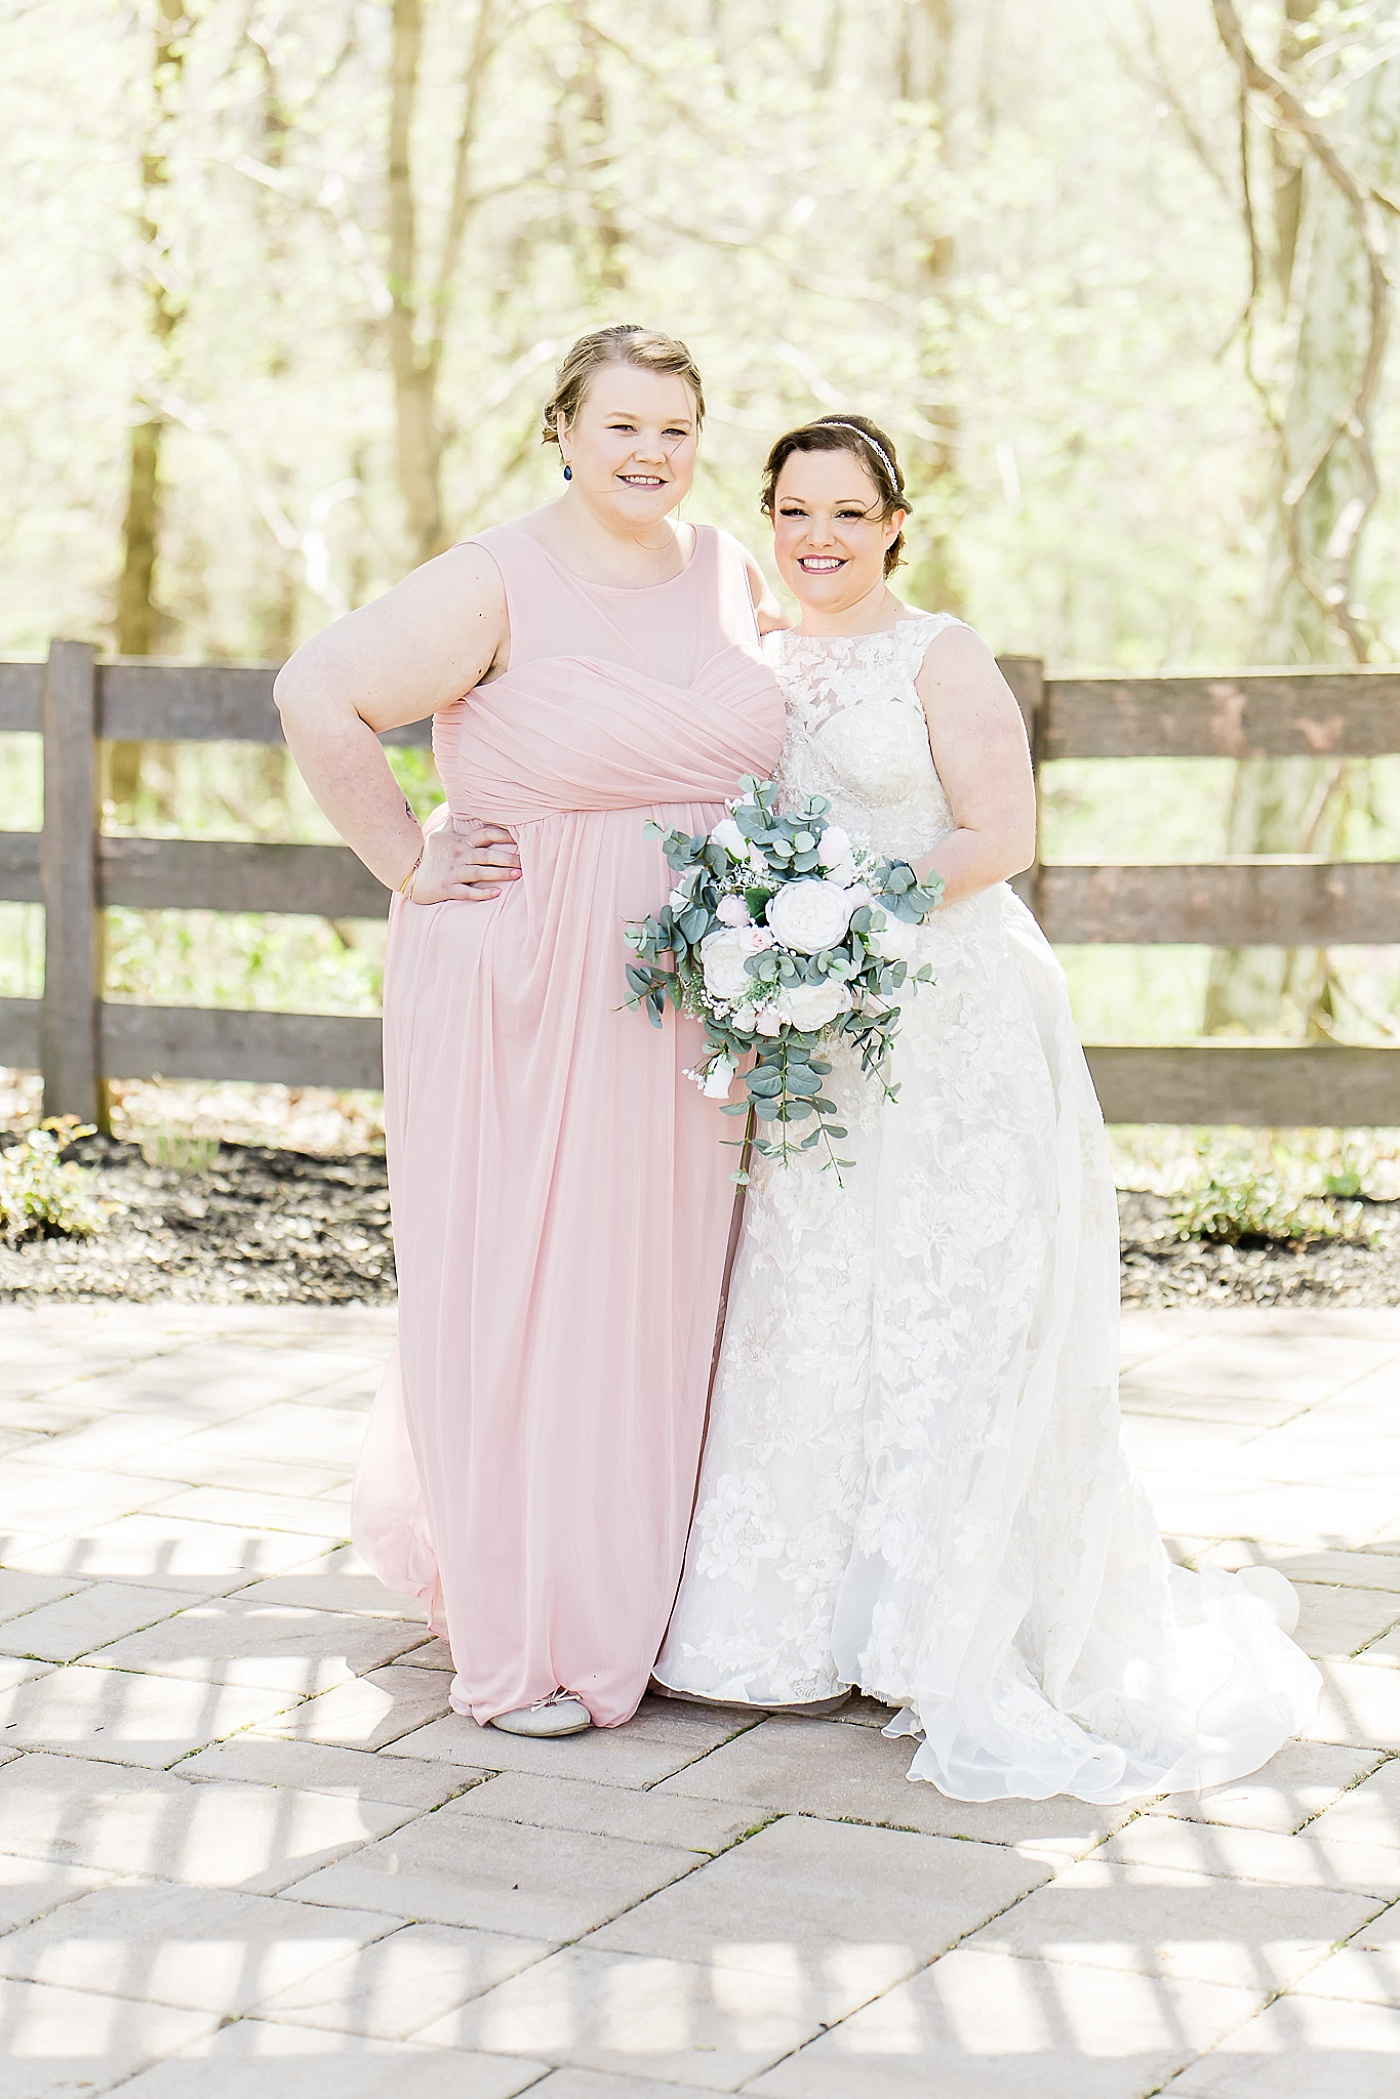 crawfordsville indiana stone creek lodge wedding rustic elegant friends theme_0140.jpg